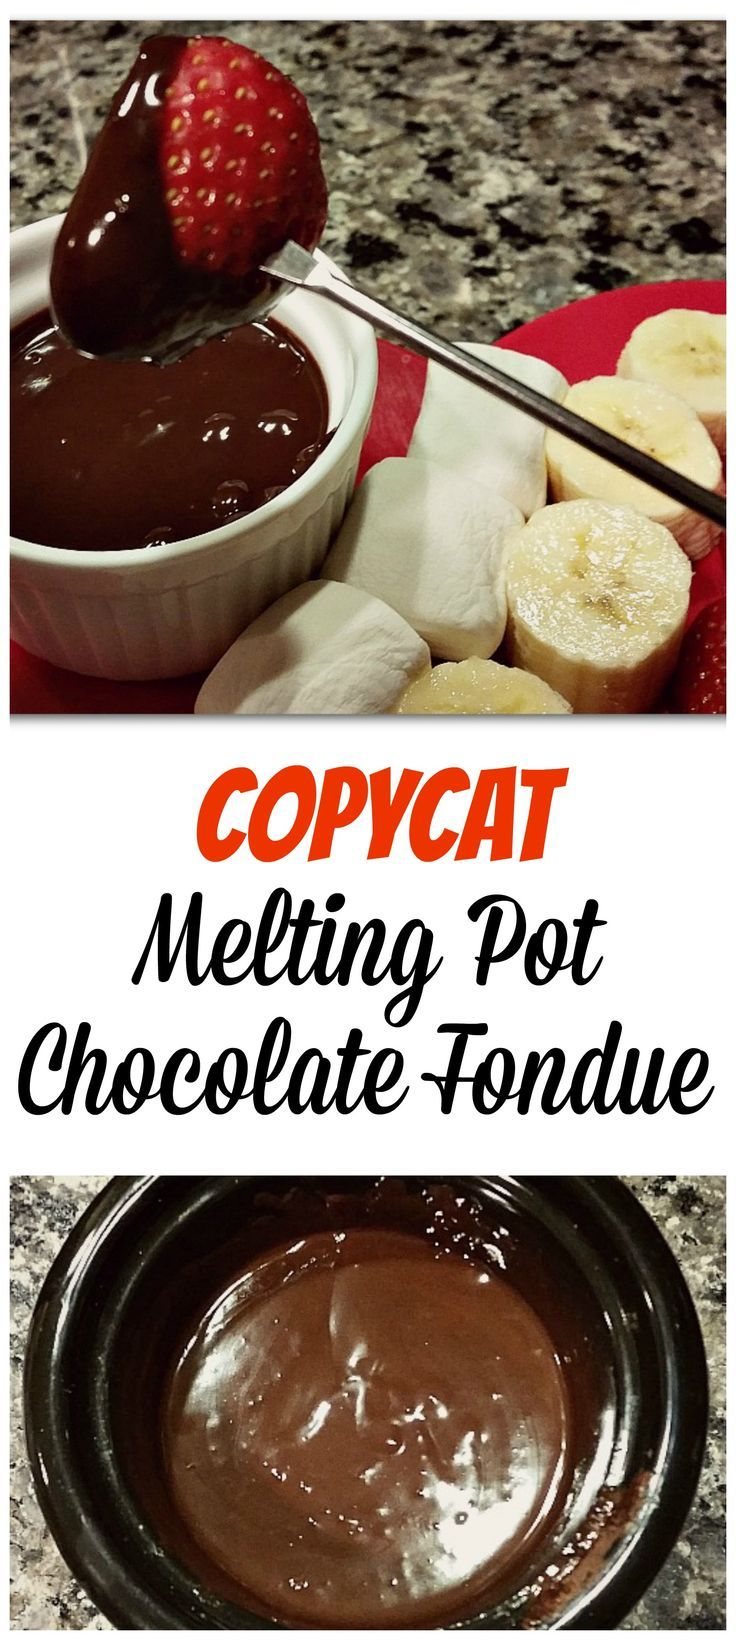 Copycat Melting Pot Chocolate Fondue – In the Slow Cooker